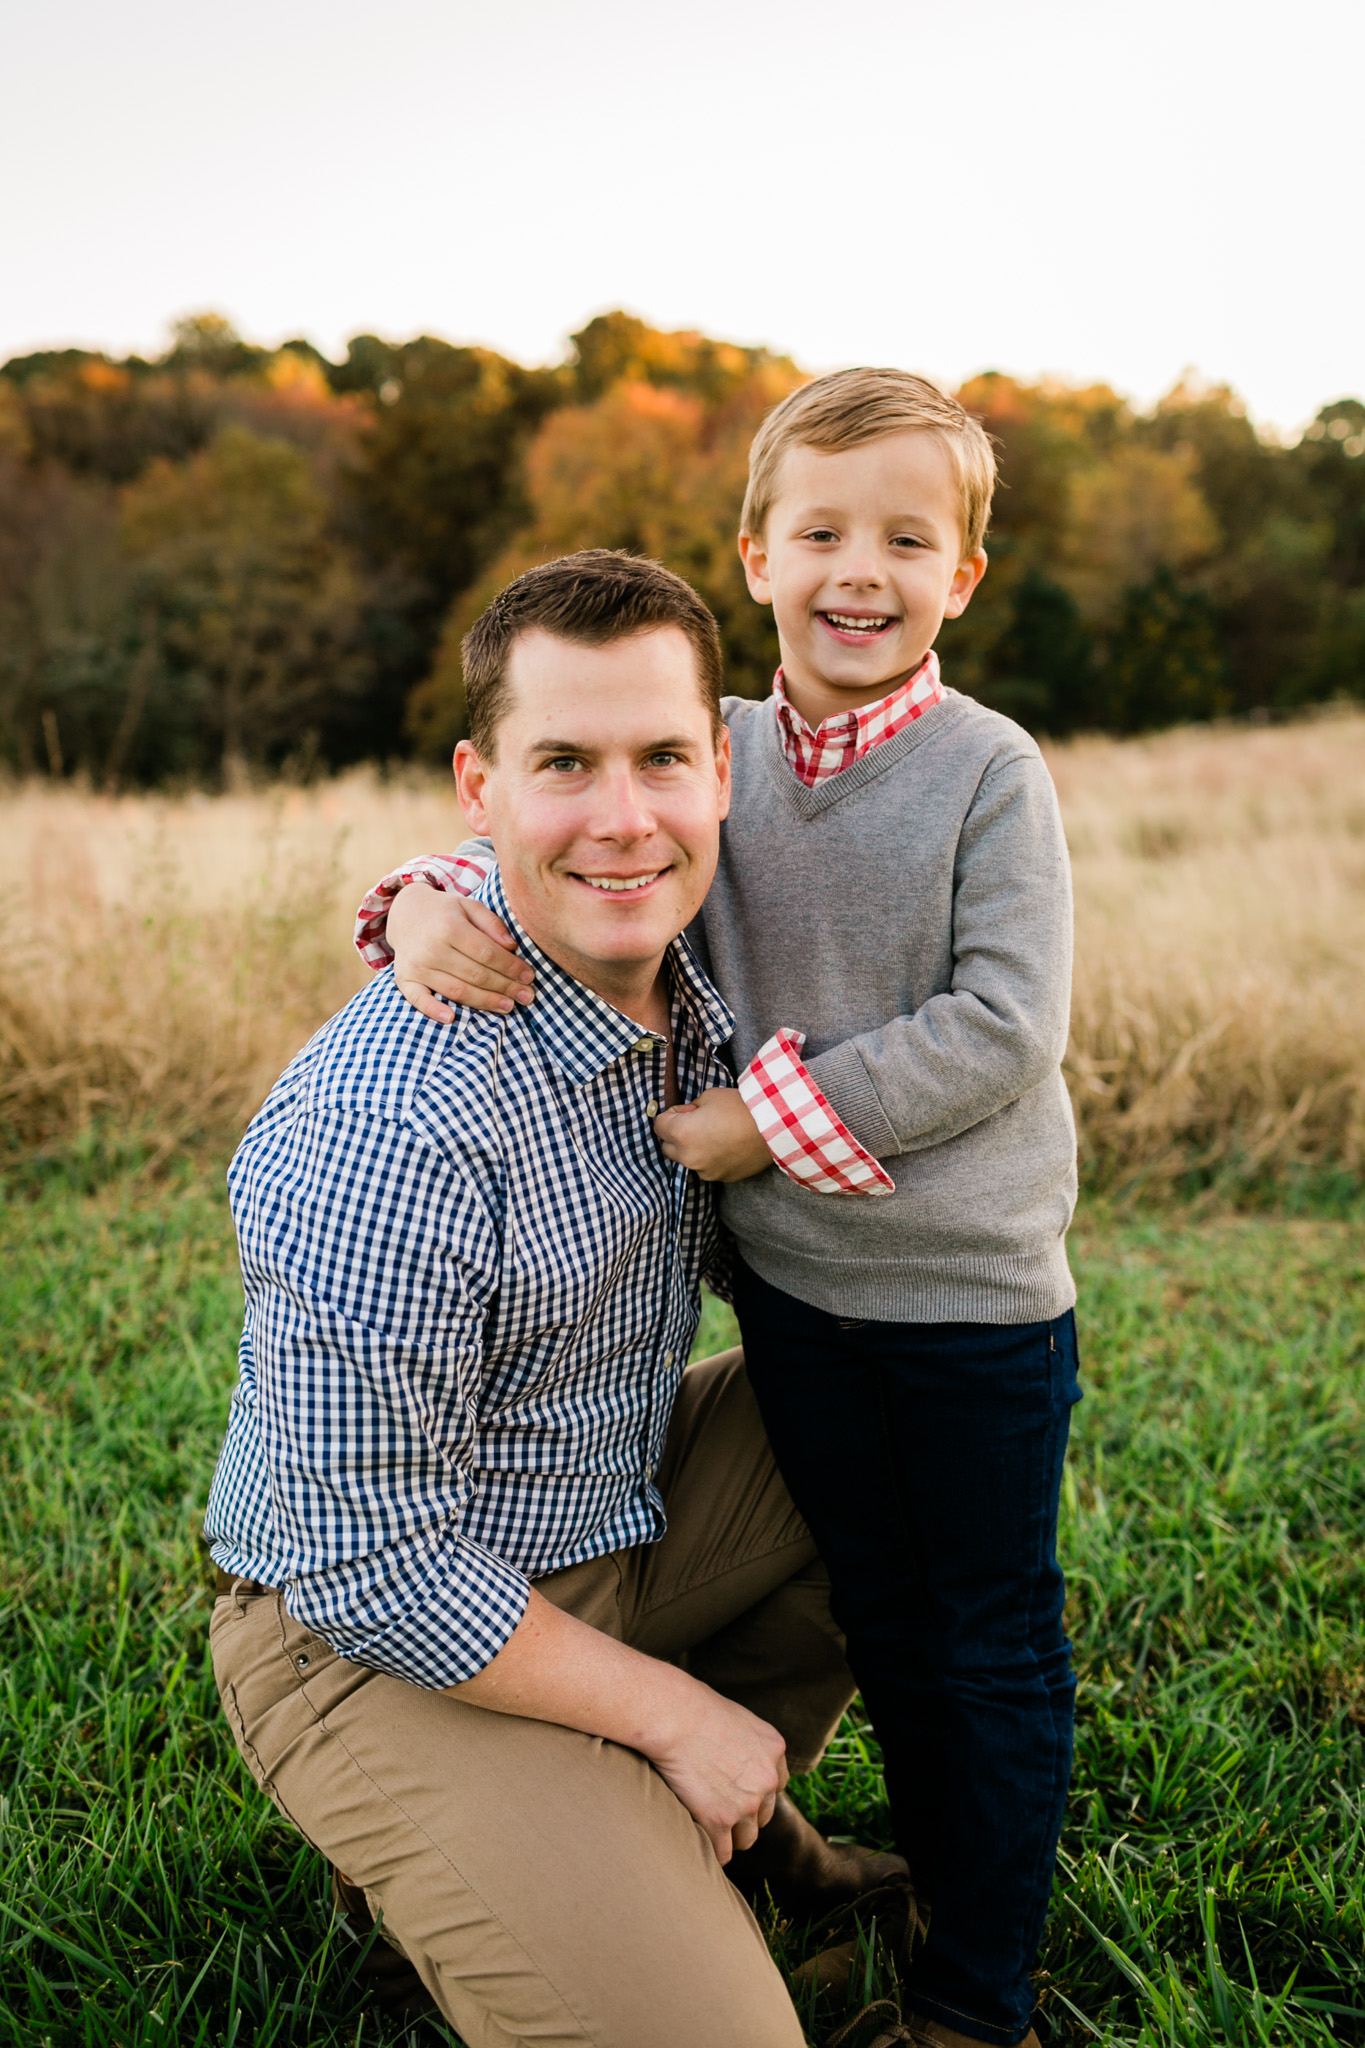 Father and son photo outside in open field at NC Museum of Art   Raleigh Family Photographer   By G. Lin Photography